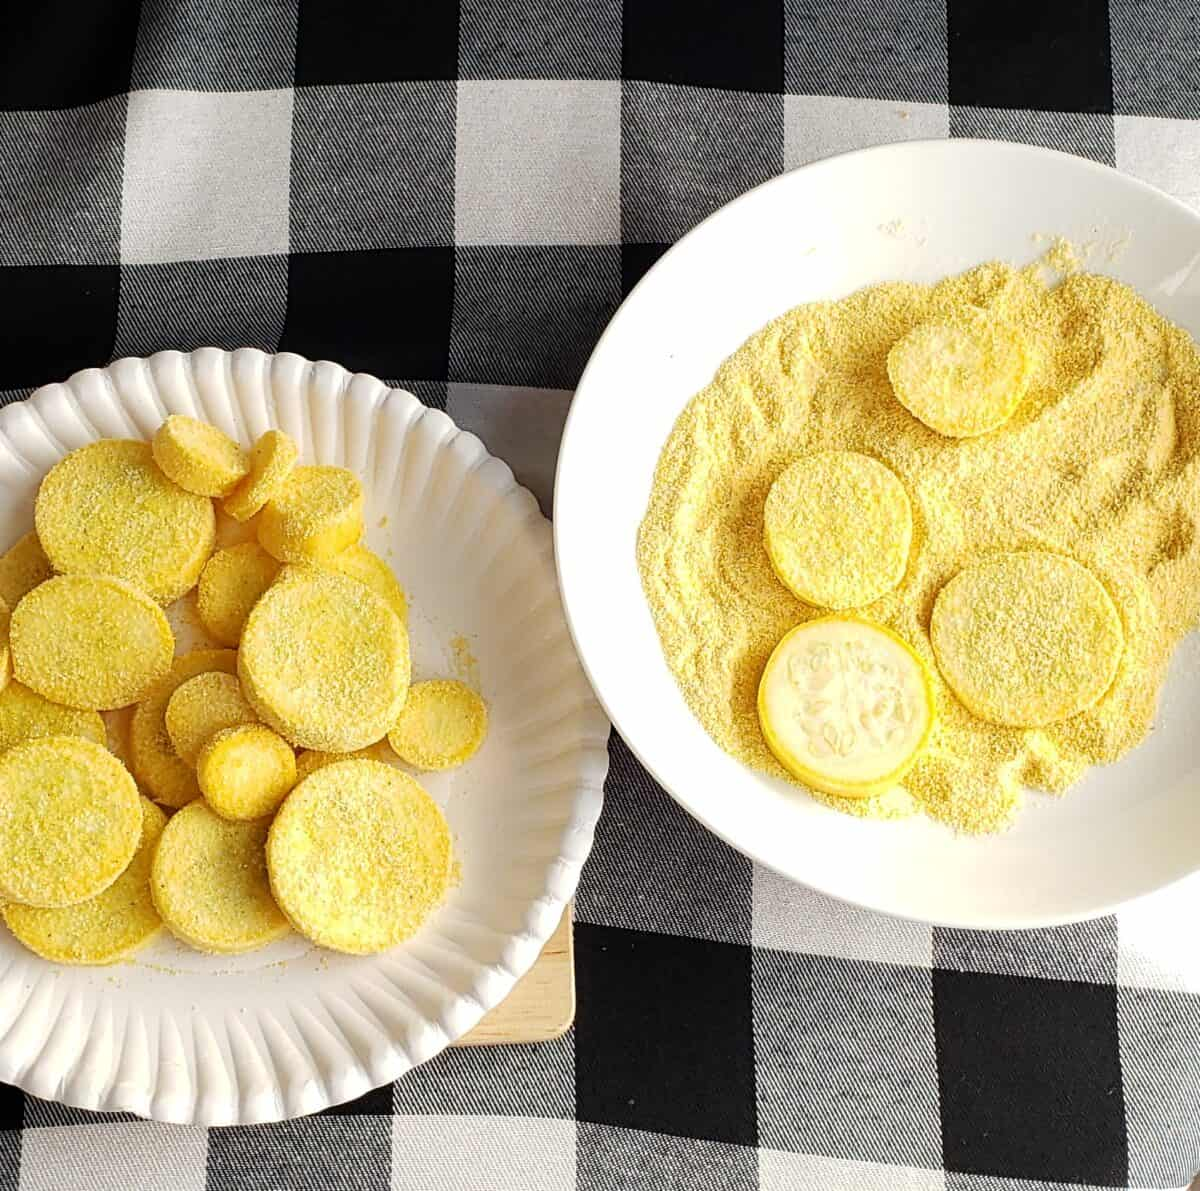 Coating yellow squash in cornmeal on white paper plates on black and white checkered fabric